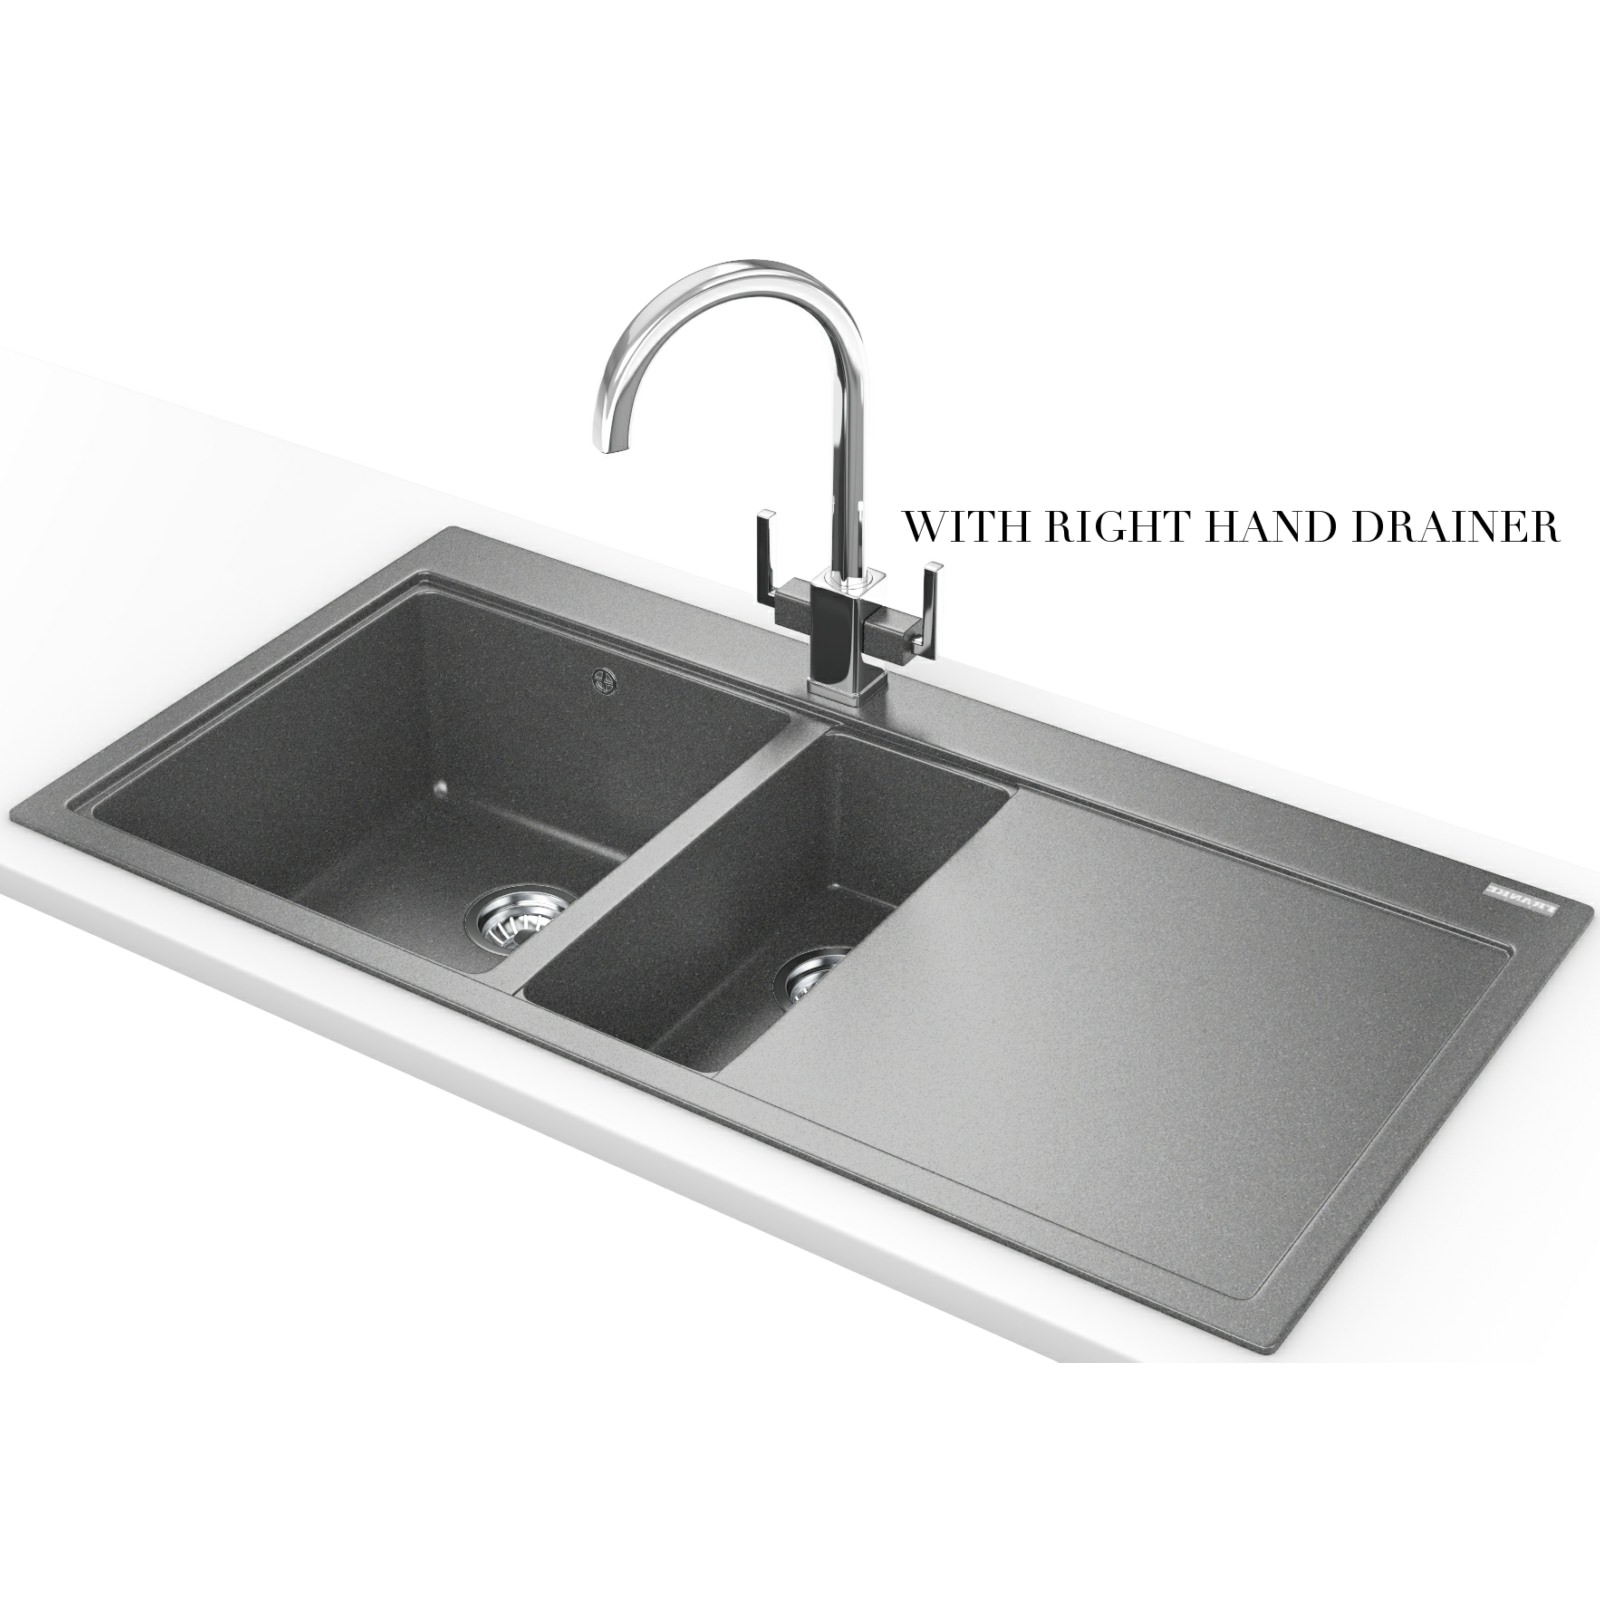 Franke Grey Sink : Franke Mythos MTG 651-100 Fragranite Stone Grey 1.5 Bowl Inset Sink ...